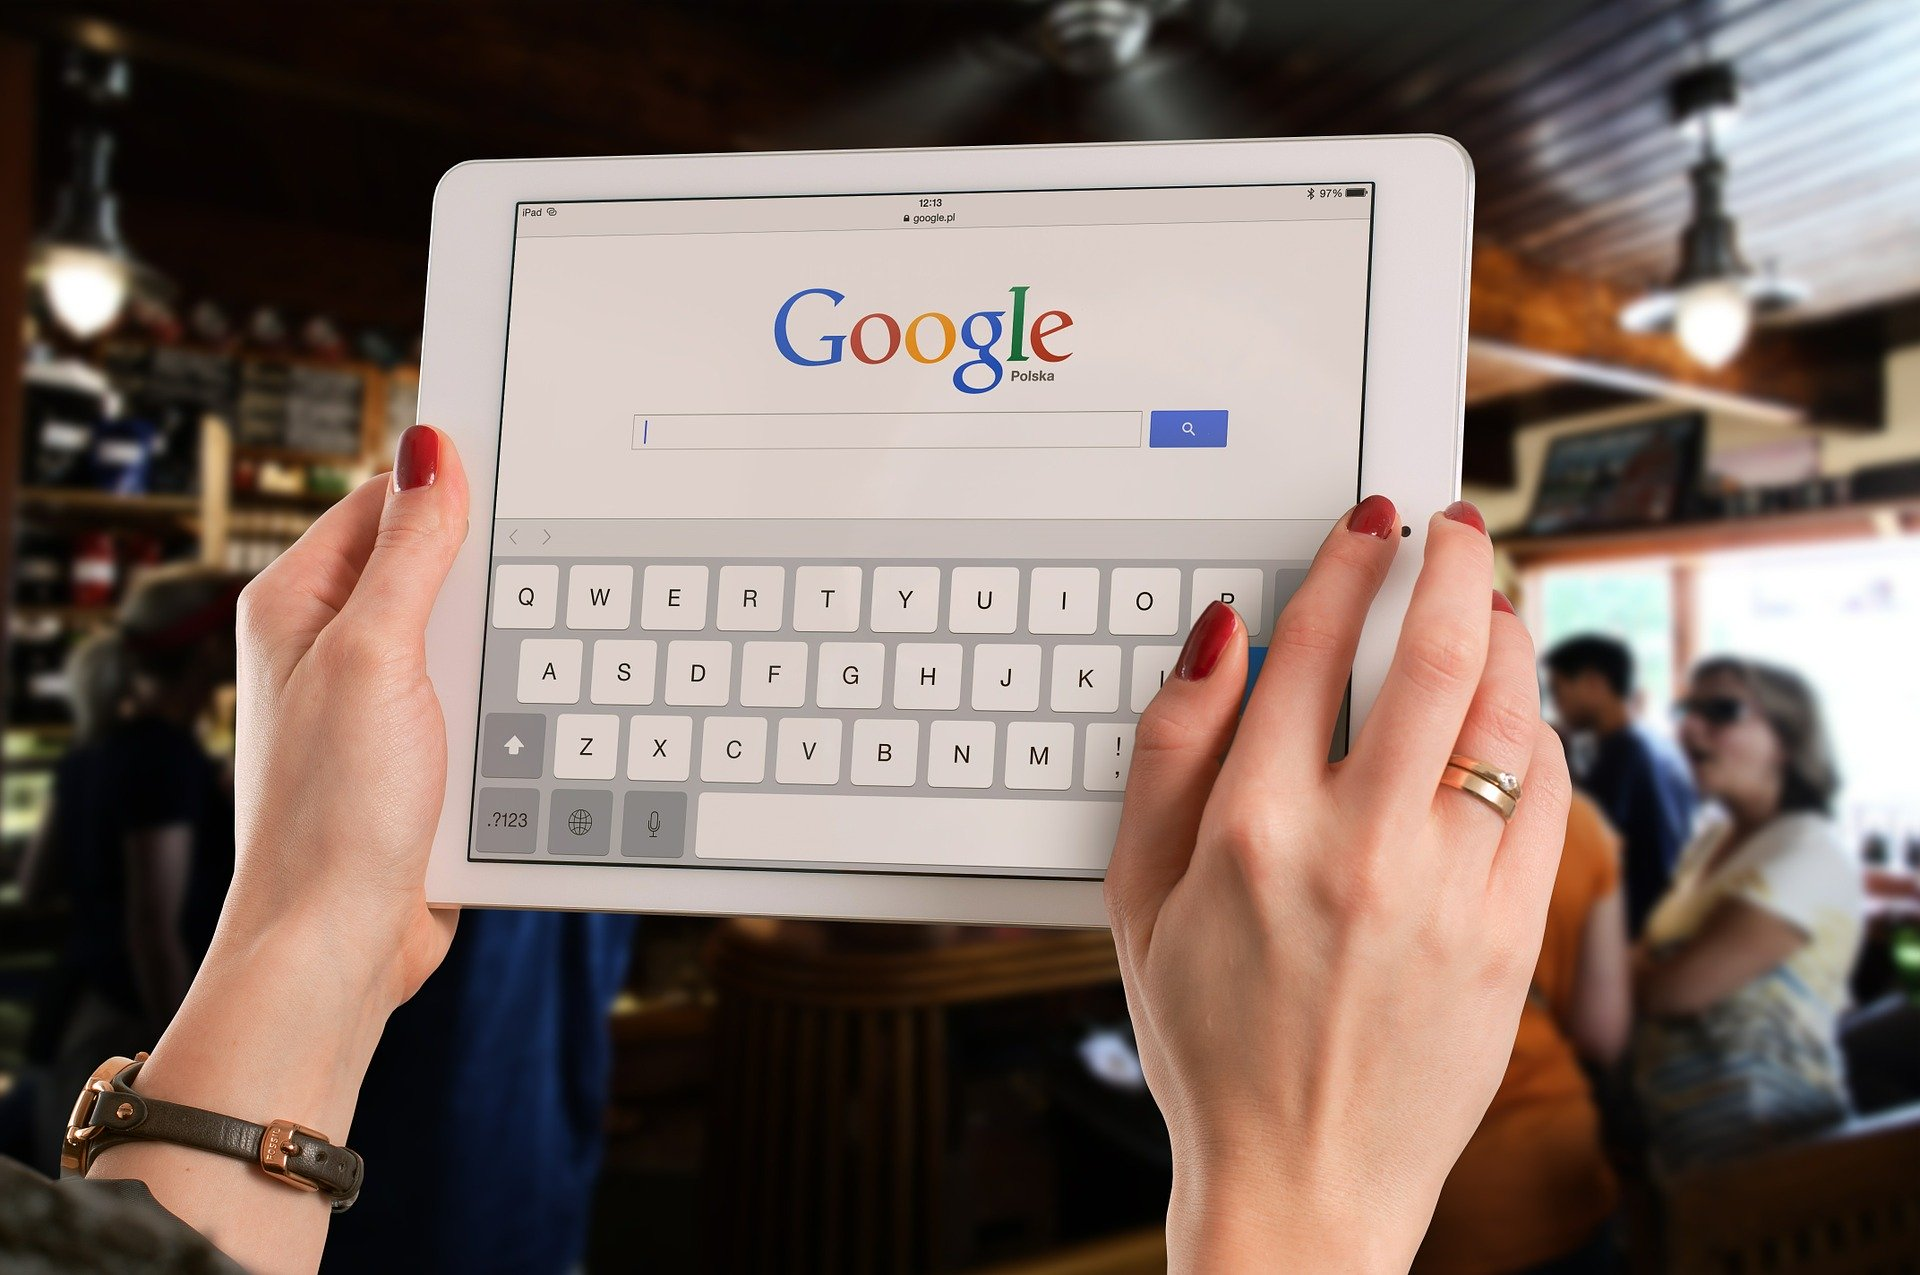 google search engine on tablet